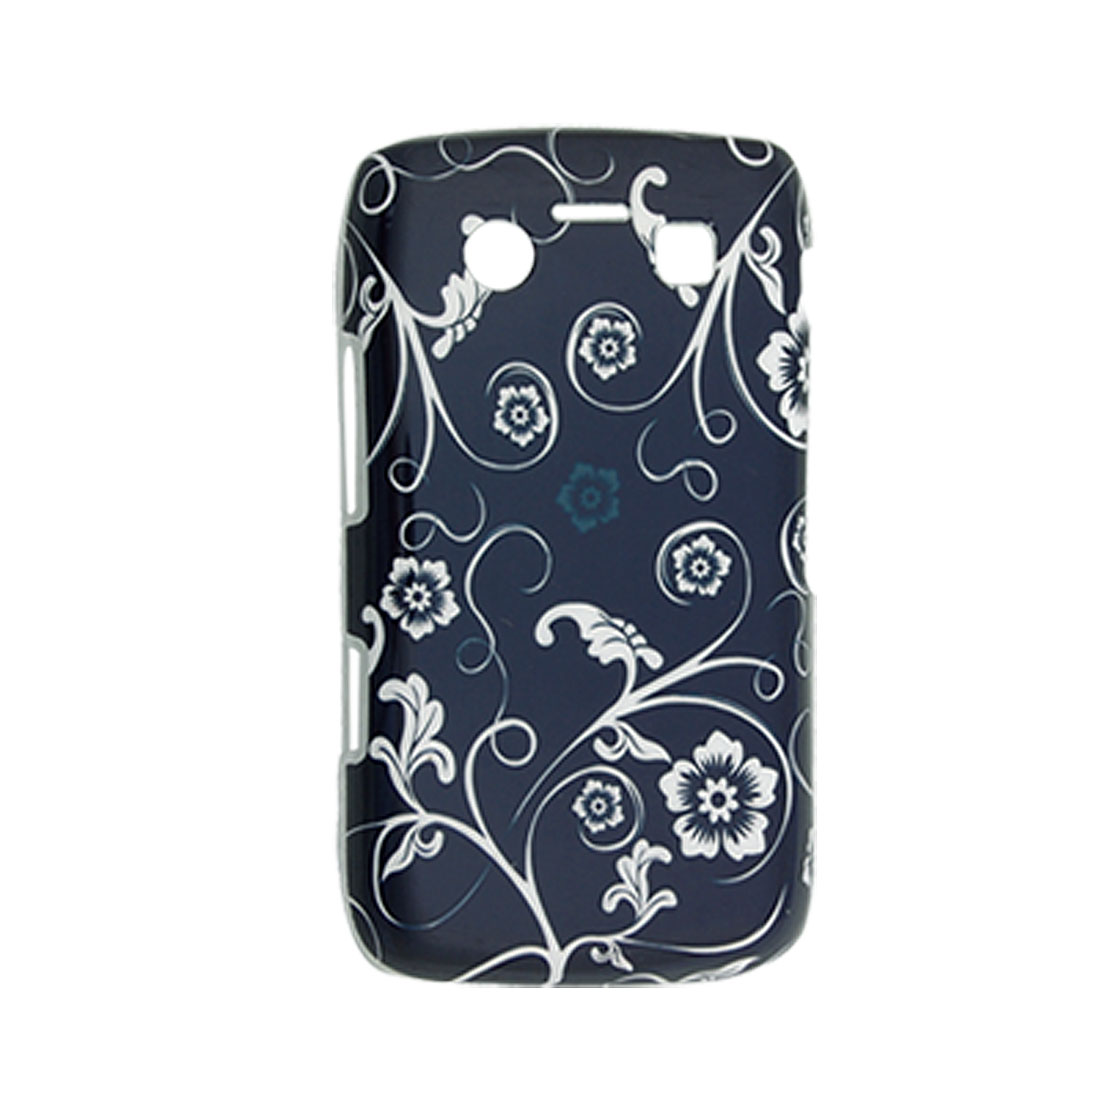 Floral Hard Plastic Back Protector Case for Blackberry 9700